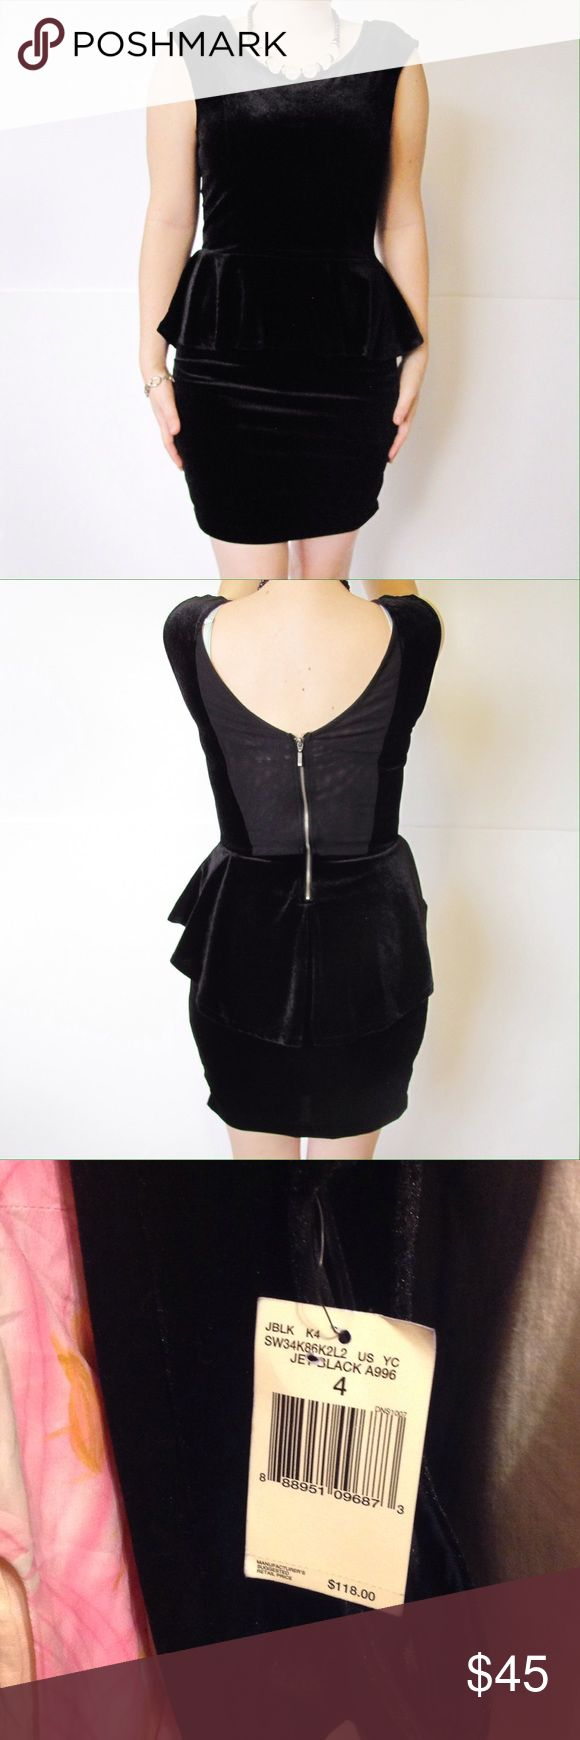 Guess black peplum black dress sz 4 Guess dress sz 4. Peplum style. Looks like velvet. Stretchy. New Guess Dresses Mini